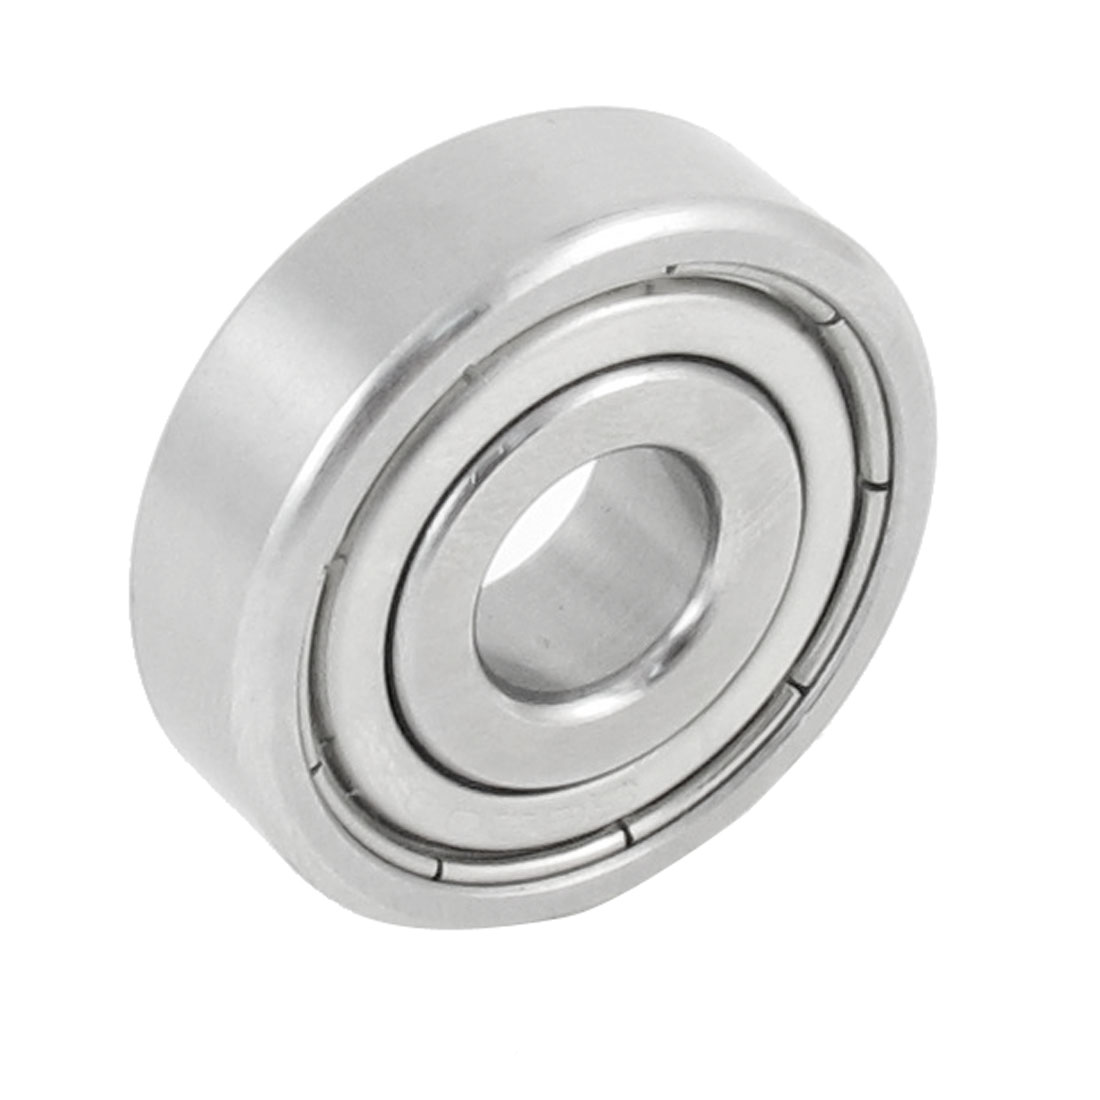 Stainless Steel 30mm x 10mm x 9mm Sealed Deep Groove Ball Bearing